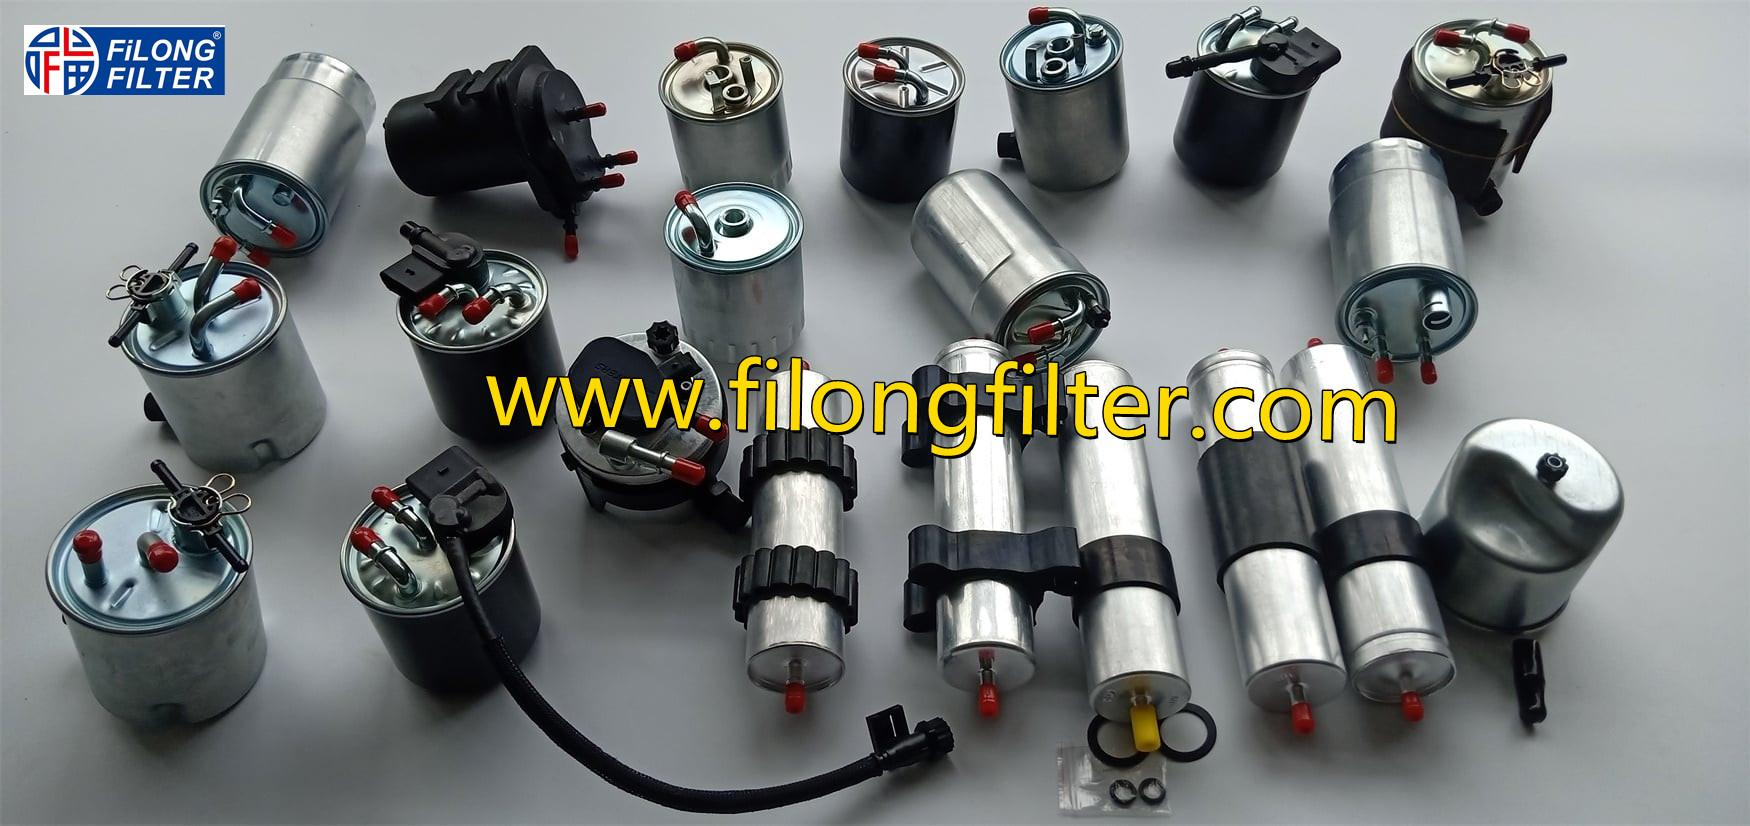 FILONG Manufactory For FORD Fuel filter CC119176BA PU12003Z 1727201   ECO Fuel Filter Manufacturers in china,  ECO Fuel Filter  factory in china,,   ECO Fuel Filter  manufactory in china,China   ECO Fuel Filter supplier,